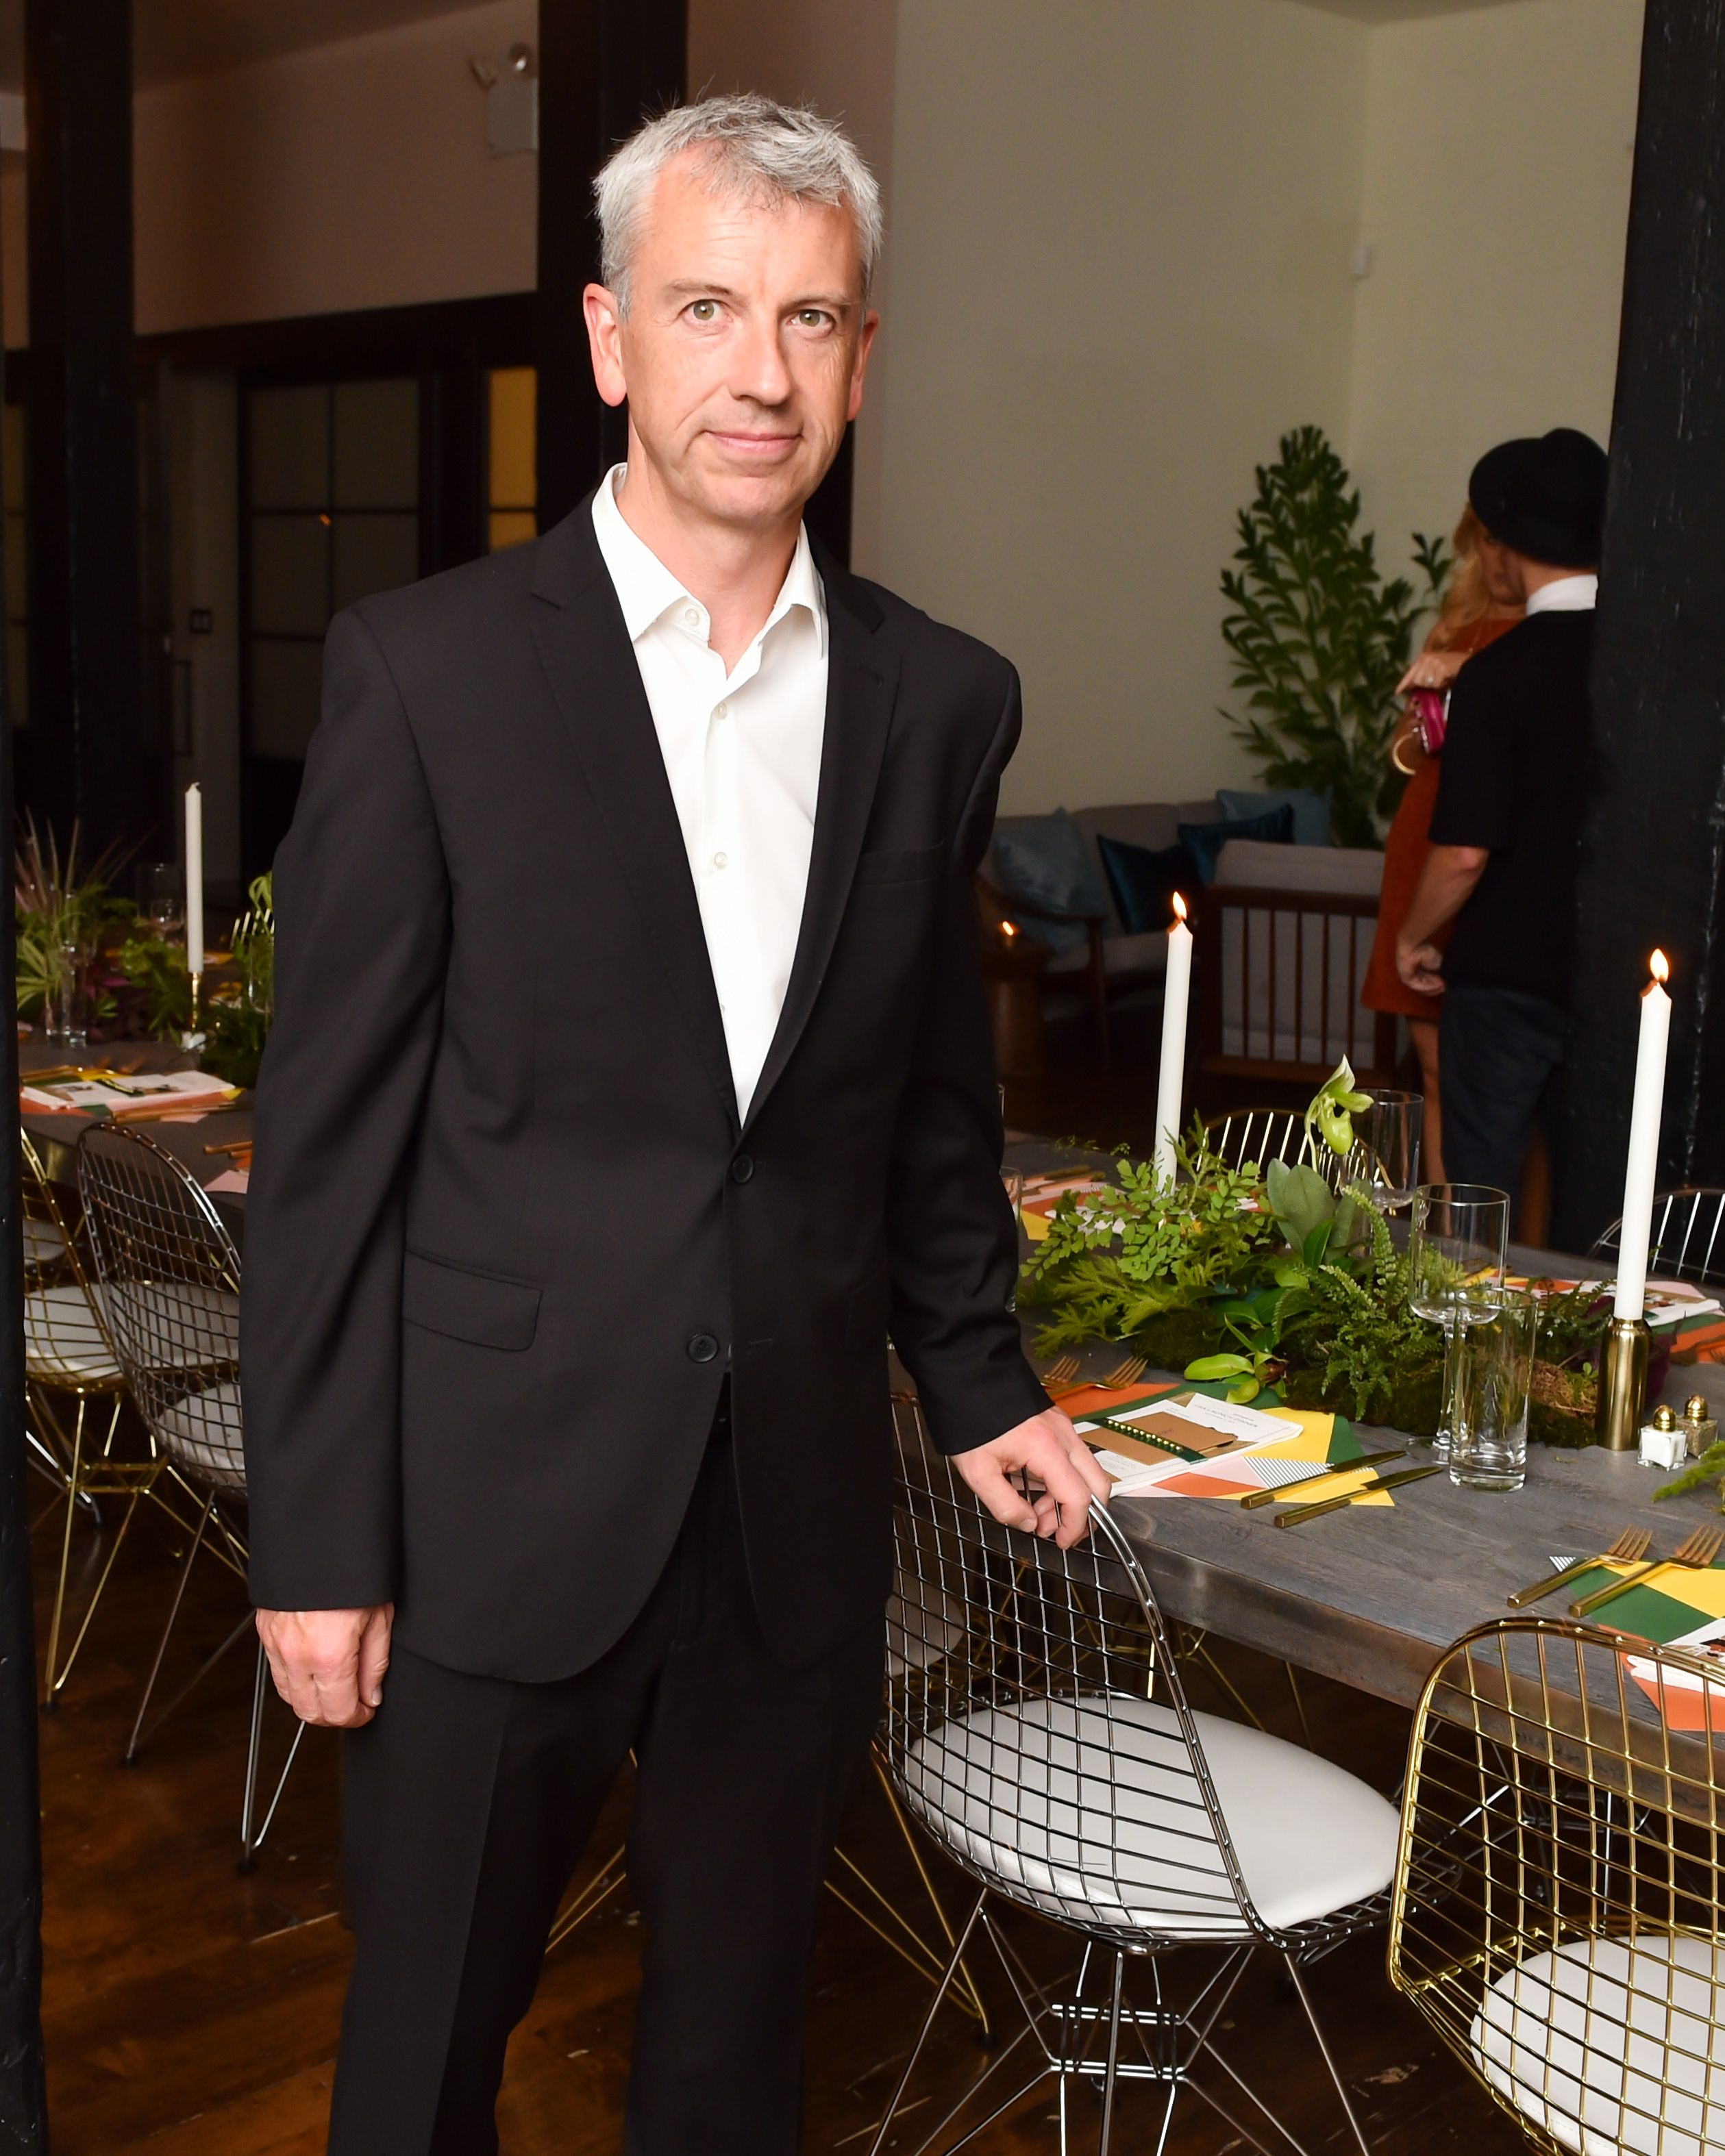 John LyttleREFINERY29 toasts Primark's US debut, And&And, New York, America - 02 Sep 2015